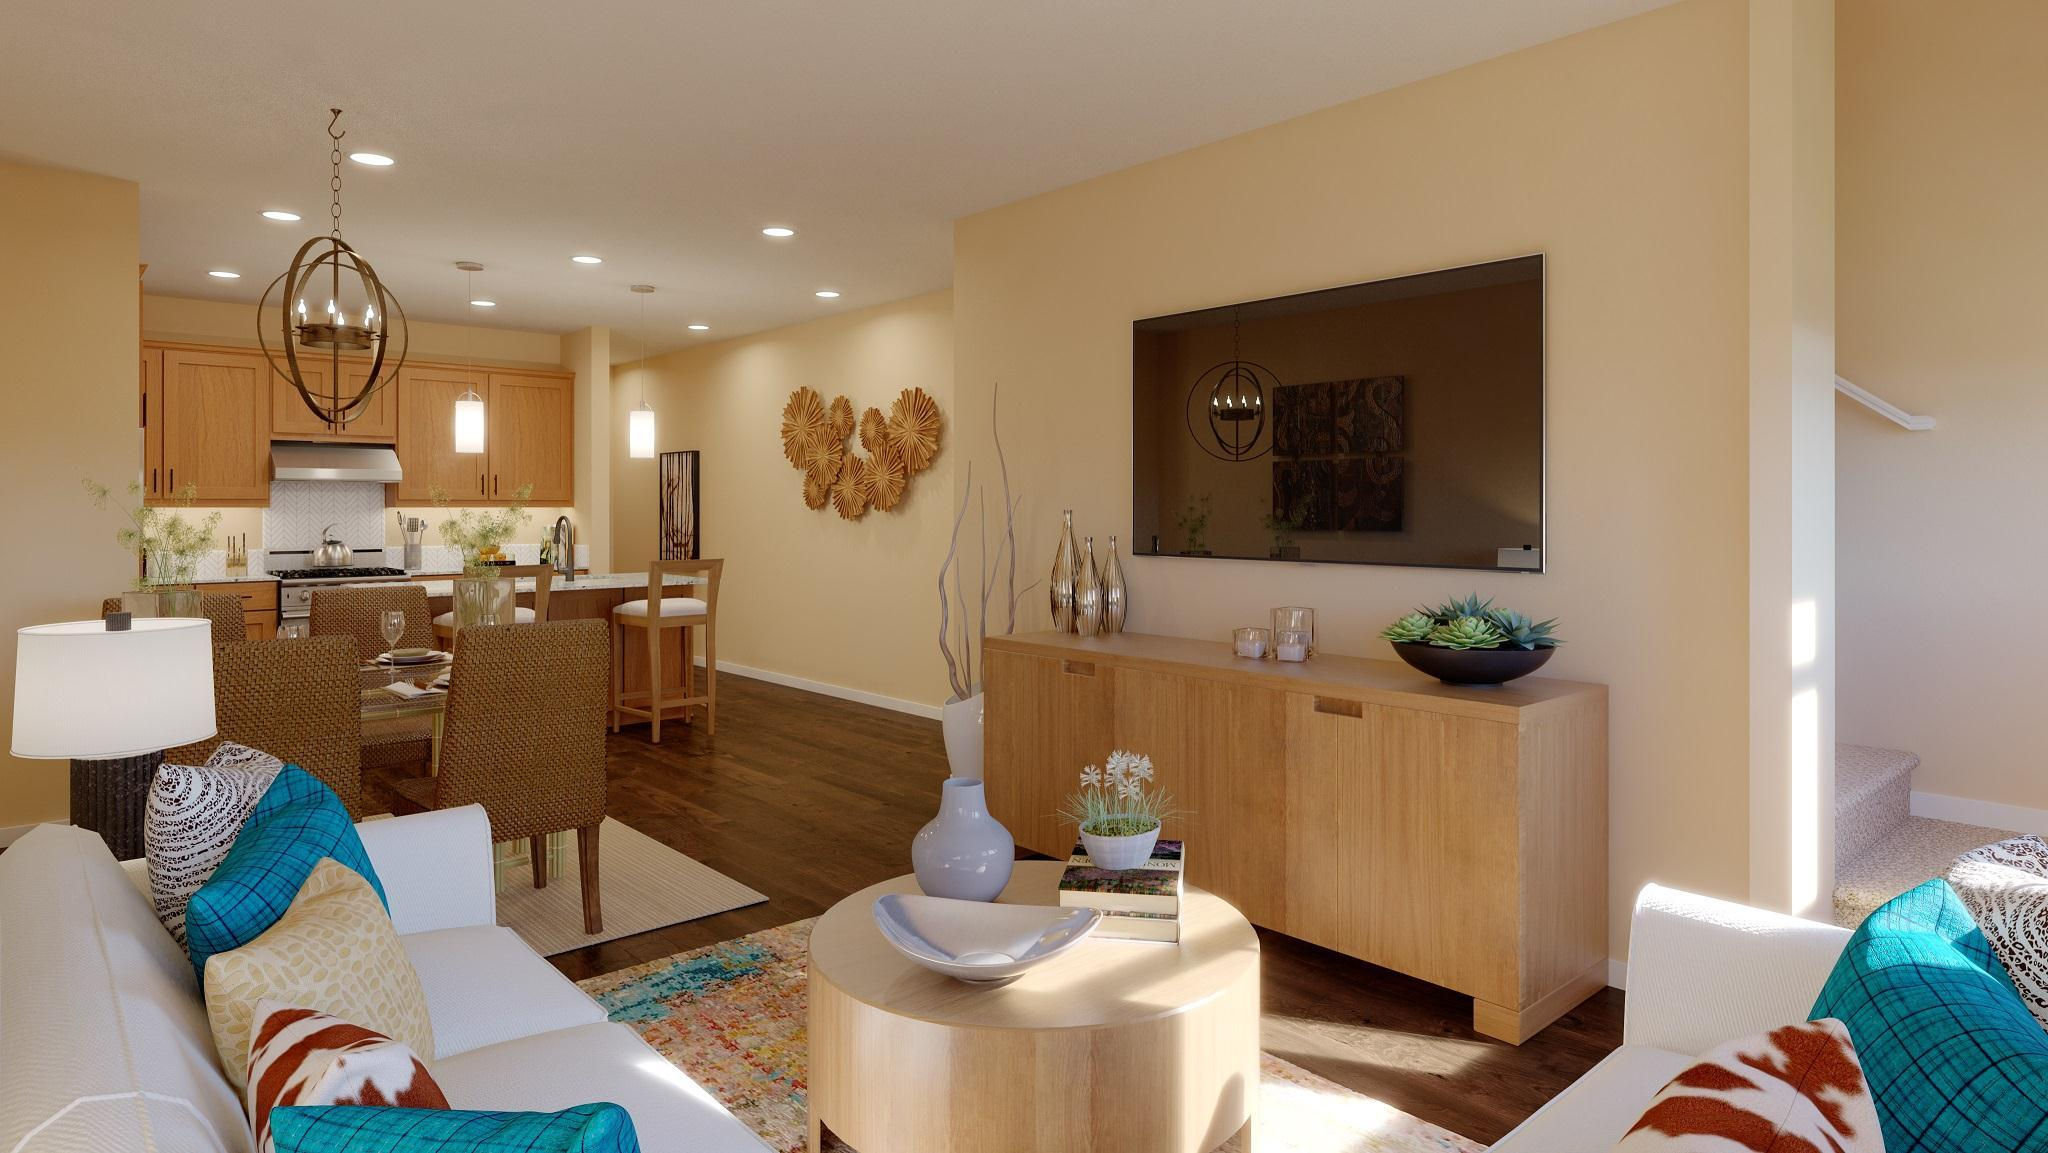 'Catalina' by Landsea Homes - NorCal in San Jose